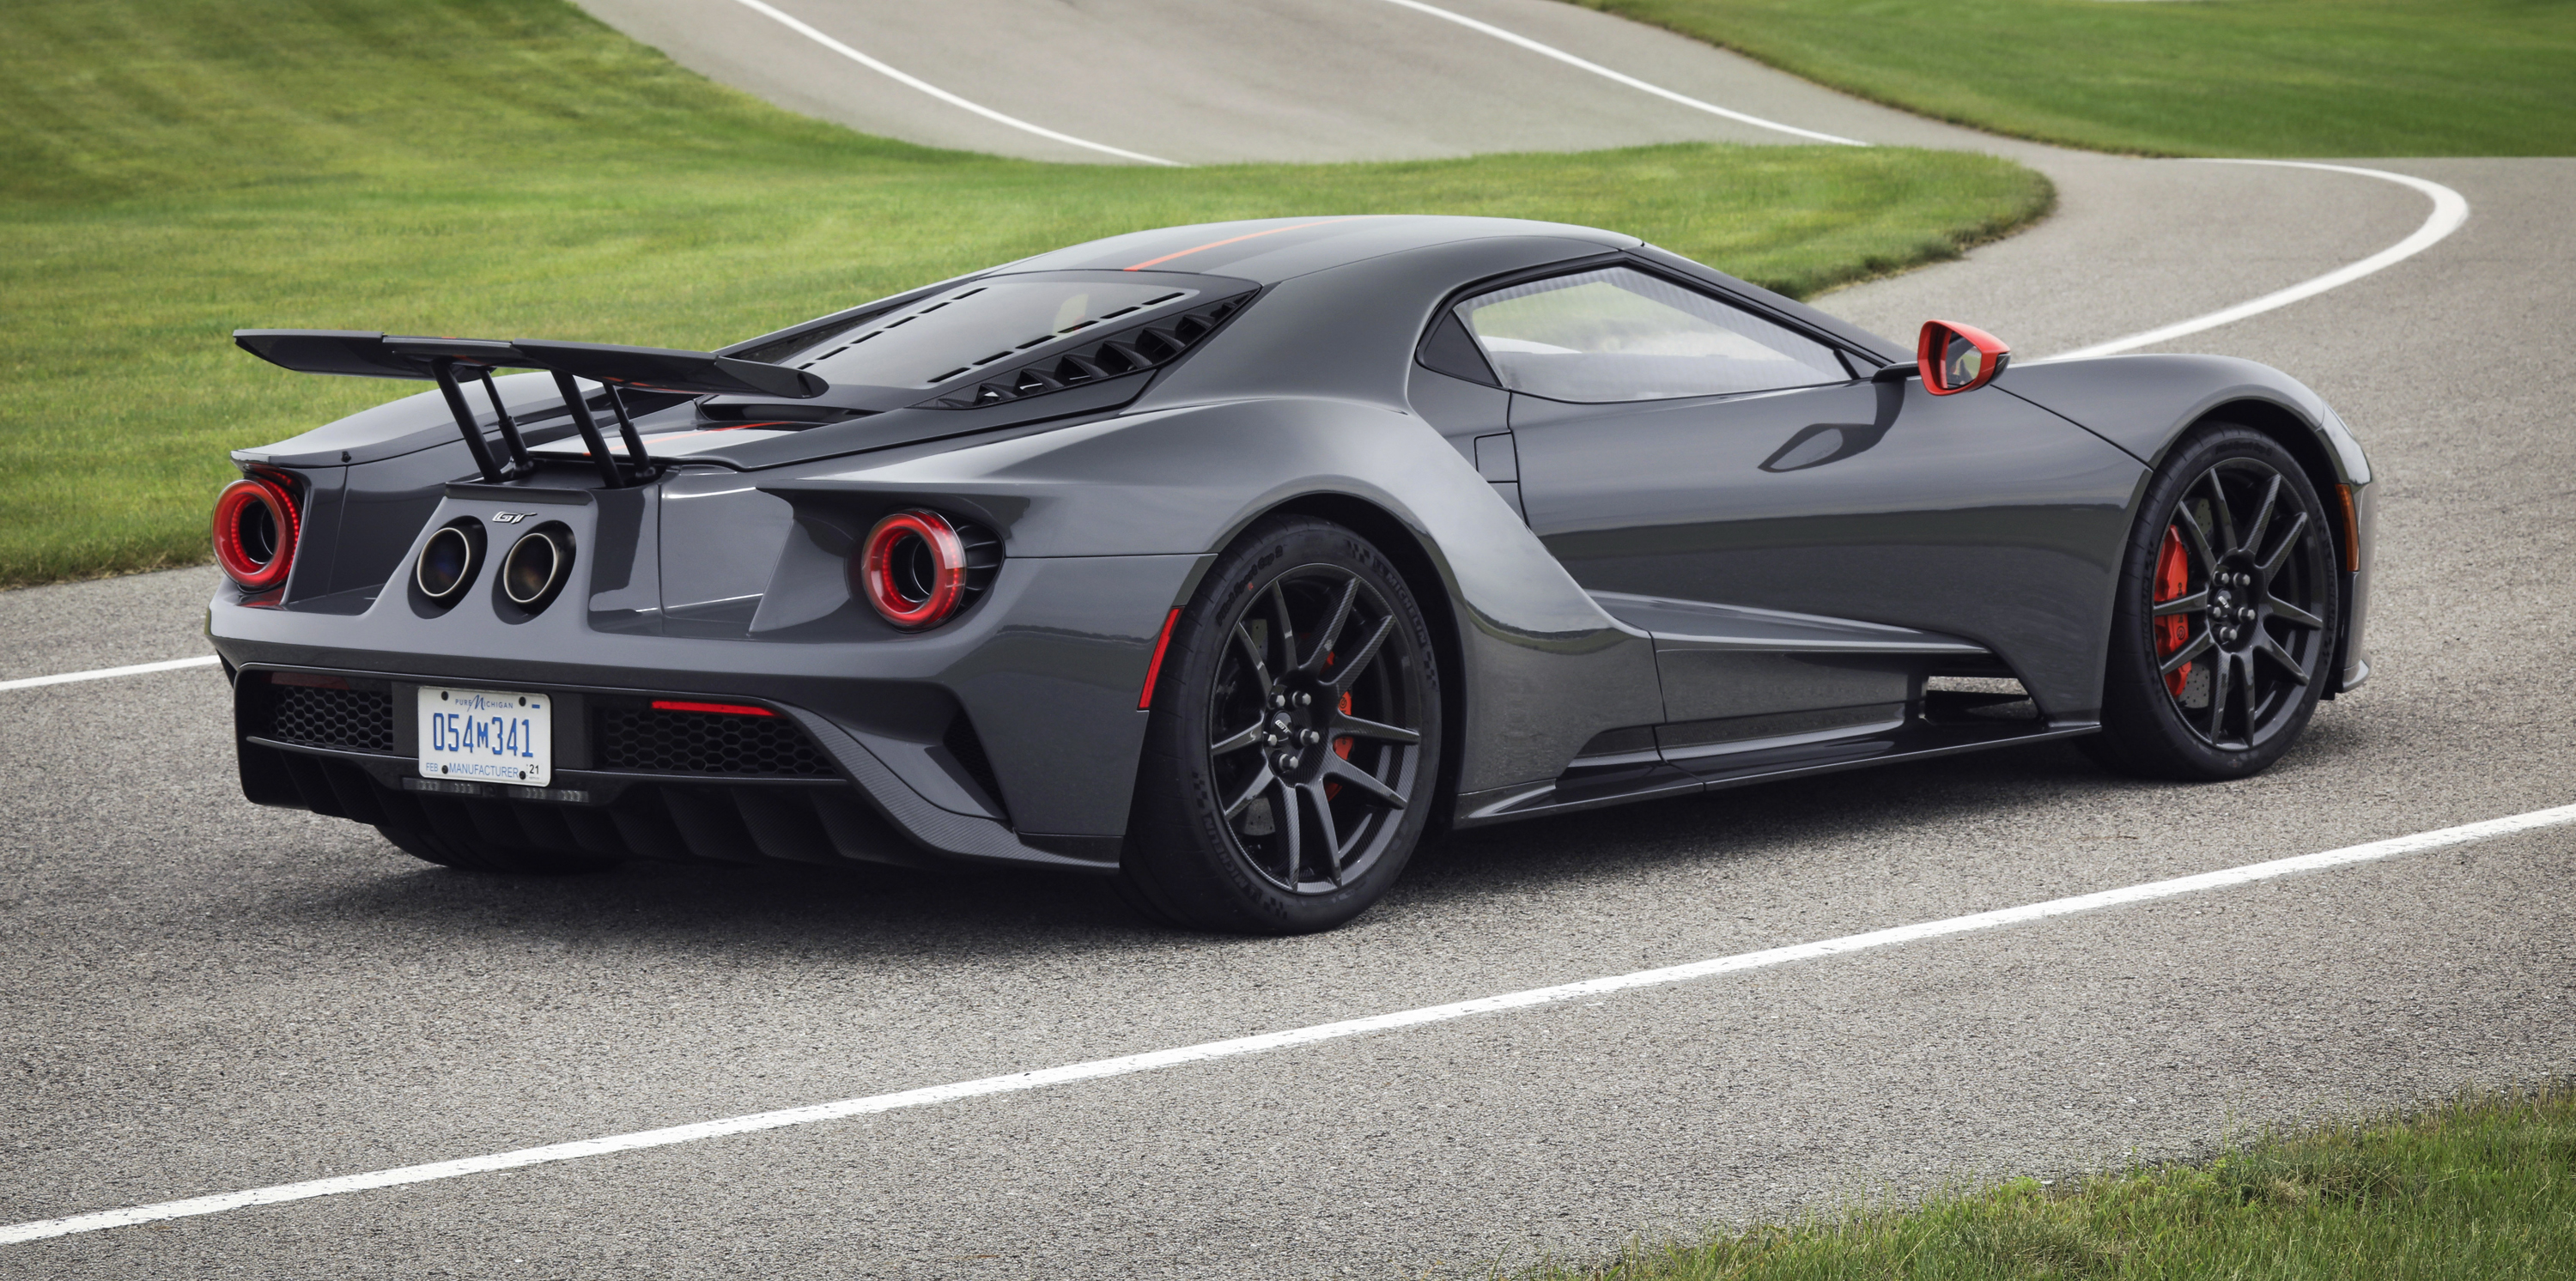 Ford GT Carbon Series Leadfoot Rear Curve